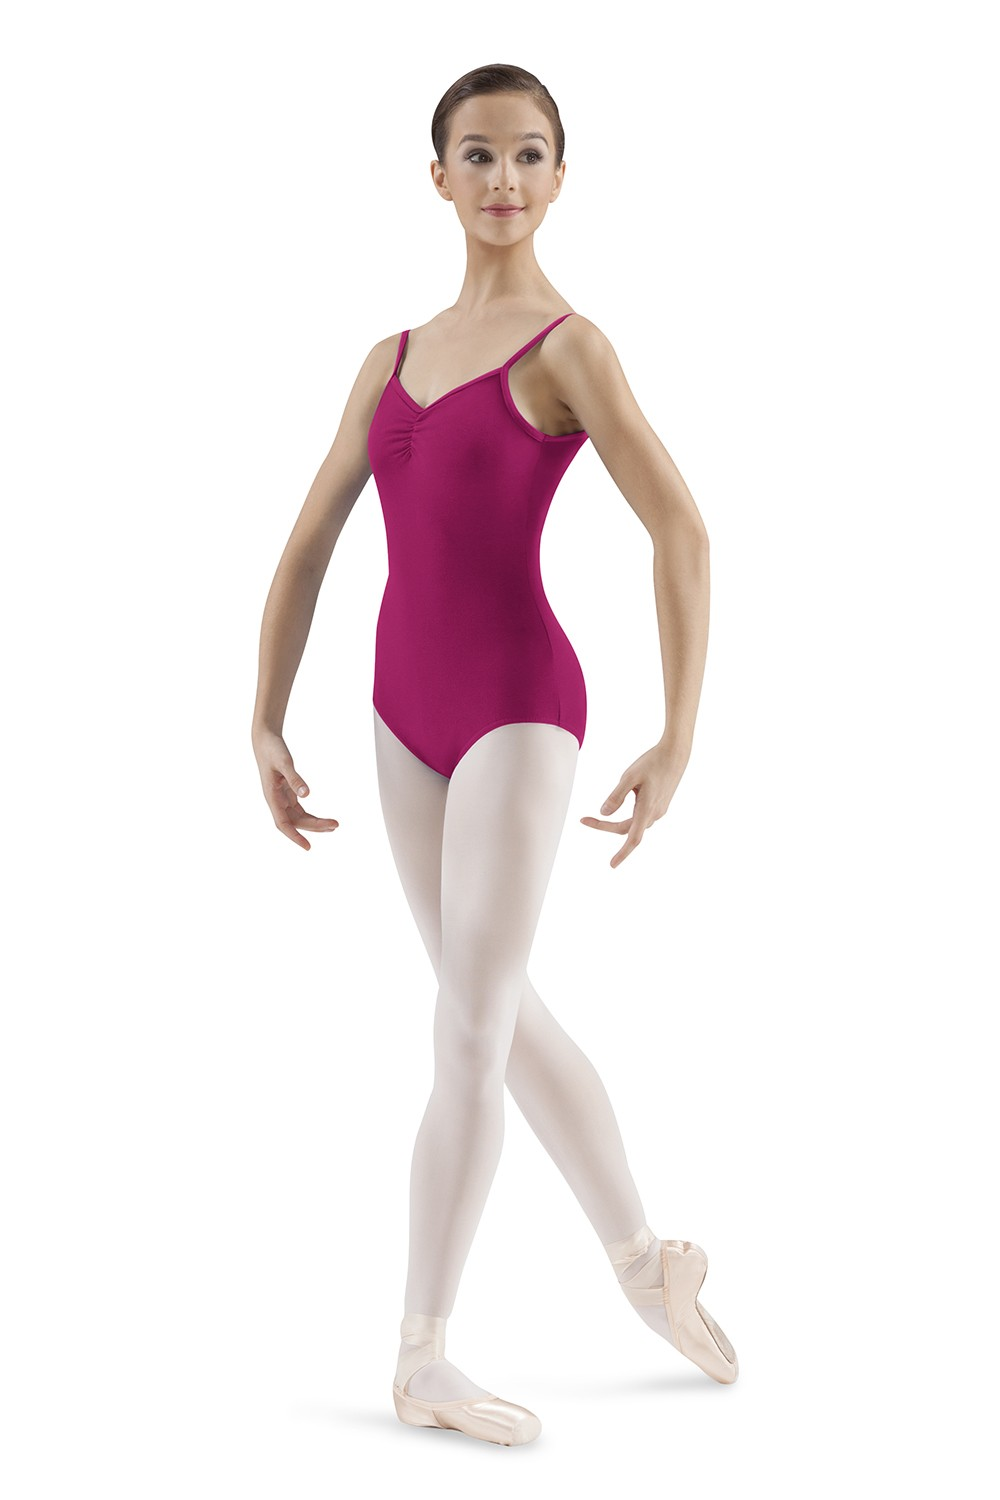 V-front Camisole Leotard Women's Dance Leotards